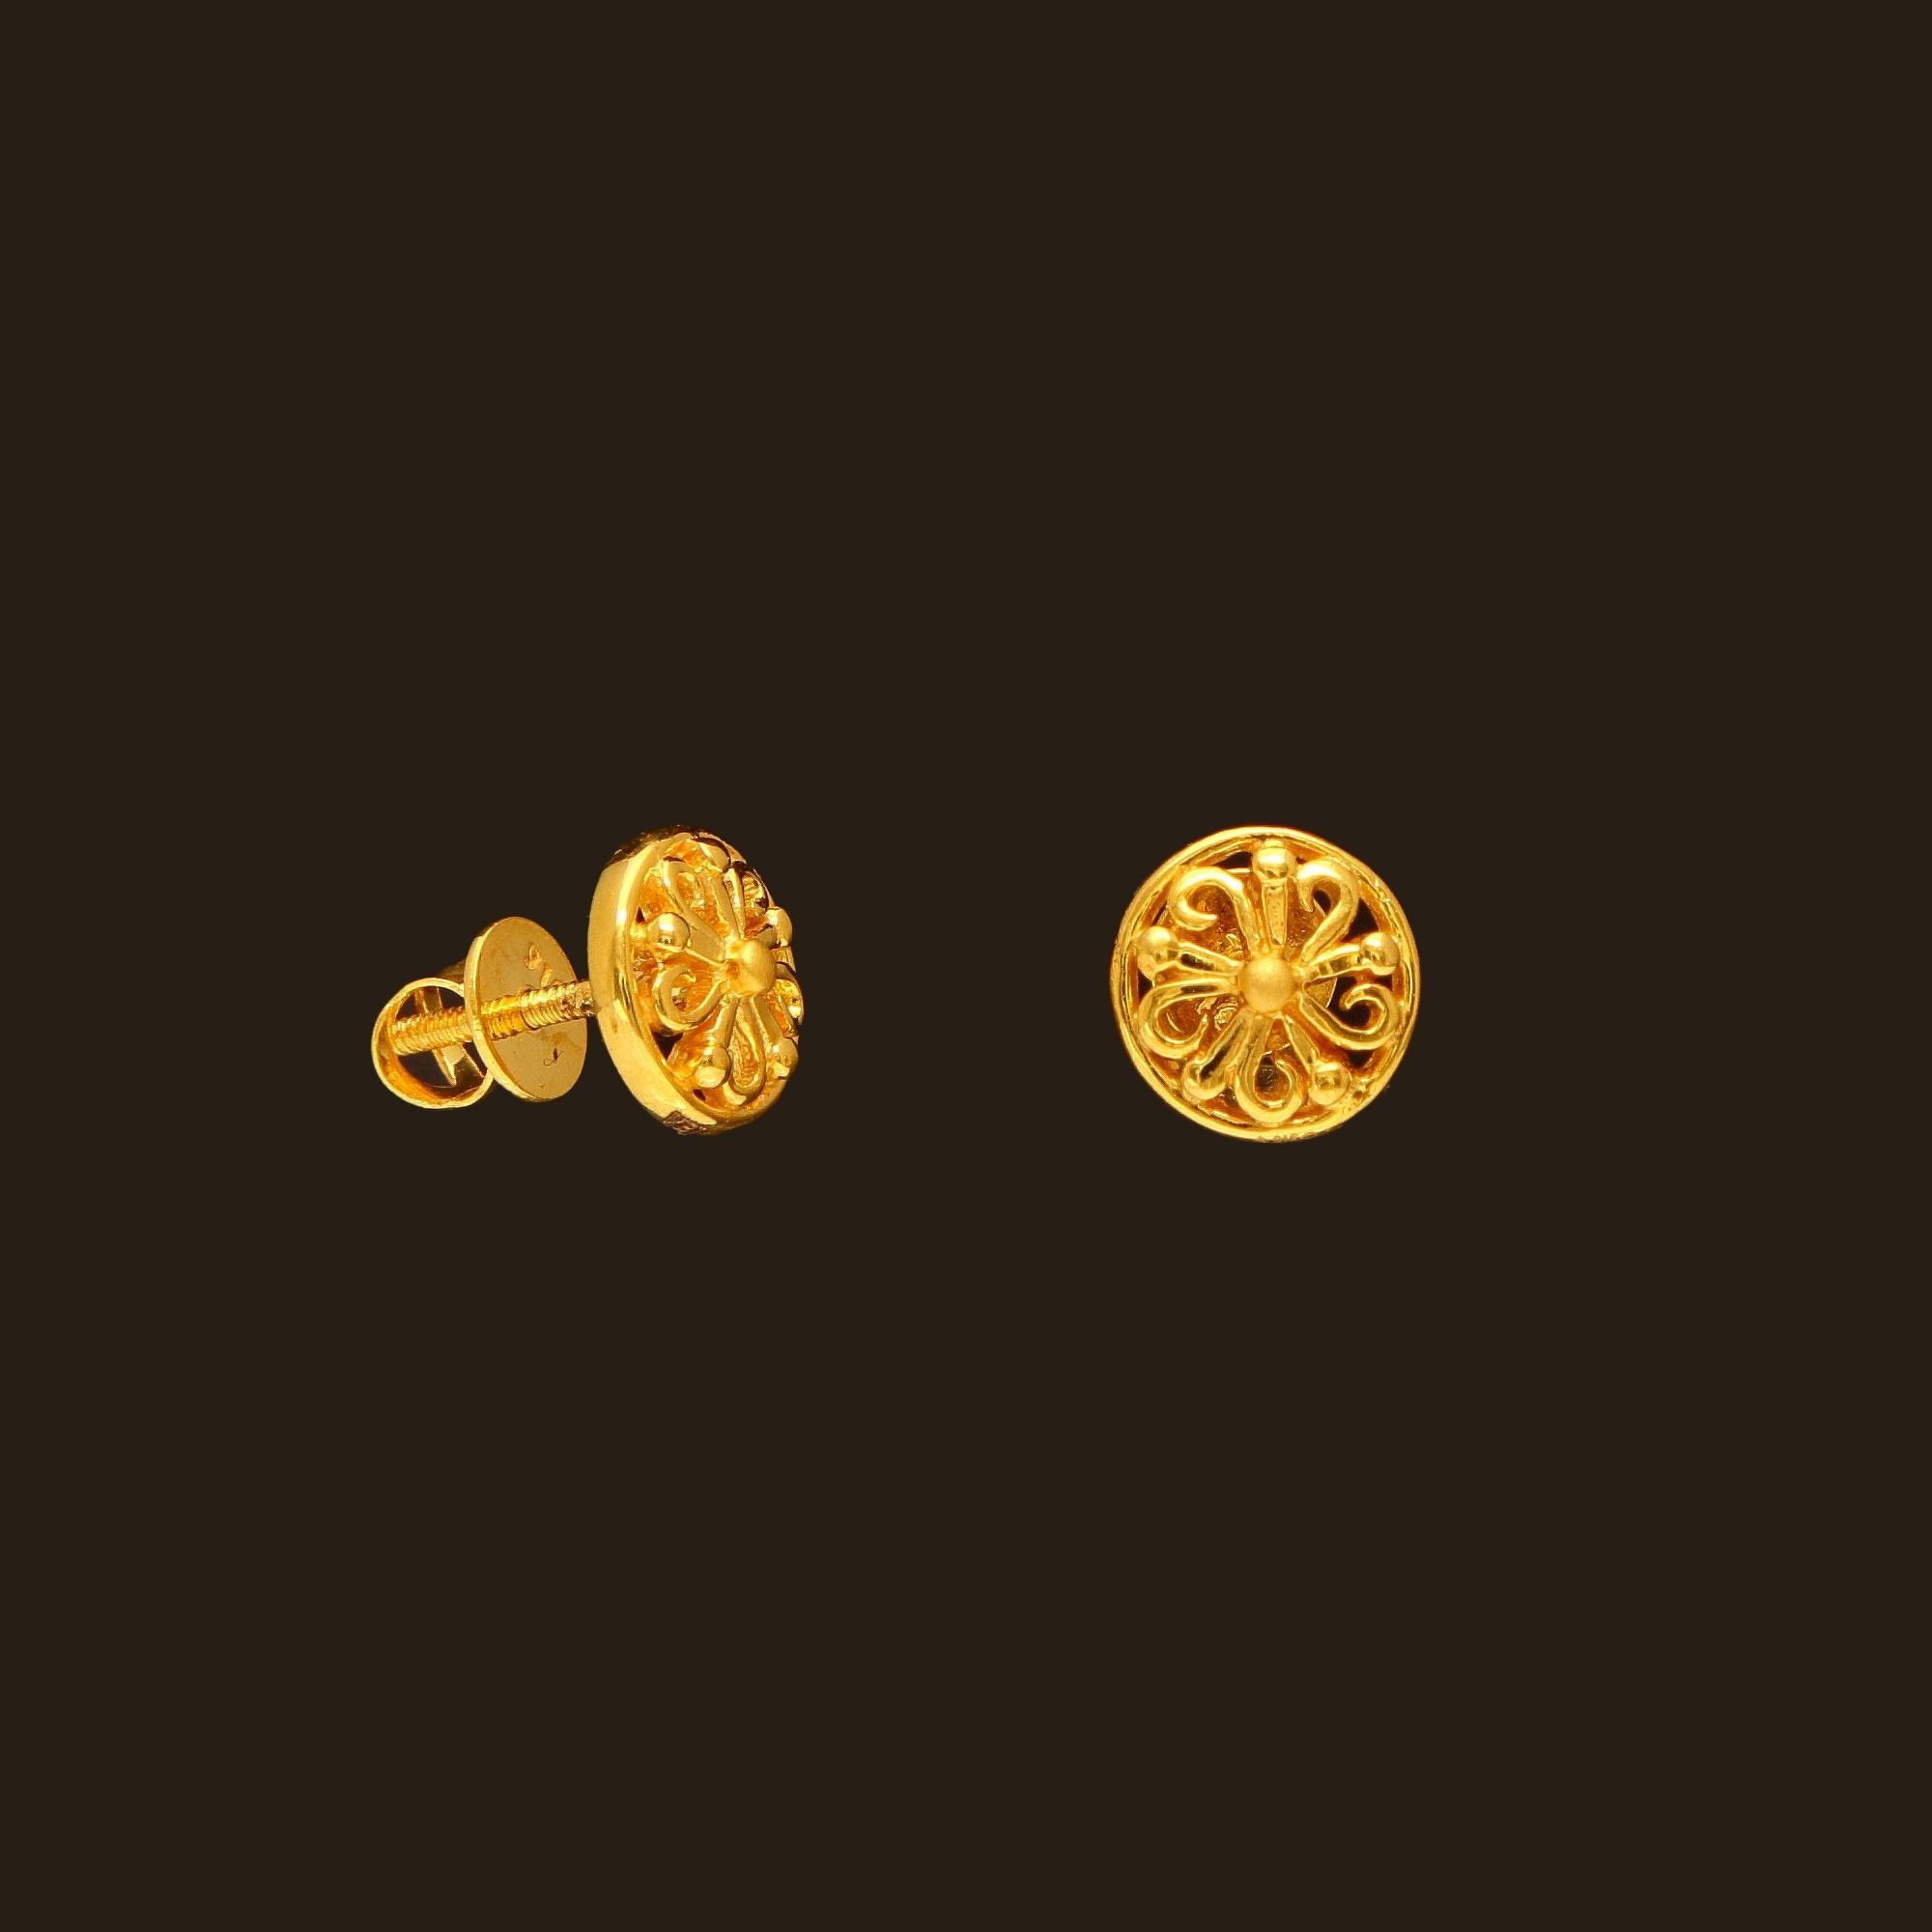 Small Gold Earrings Designs | Gold earrings designs, Models and Gold